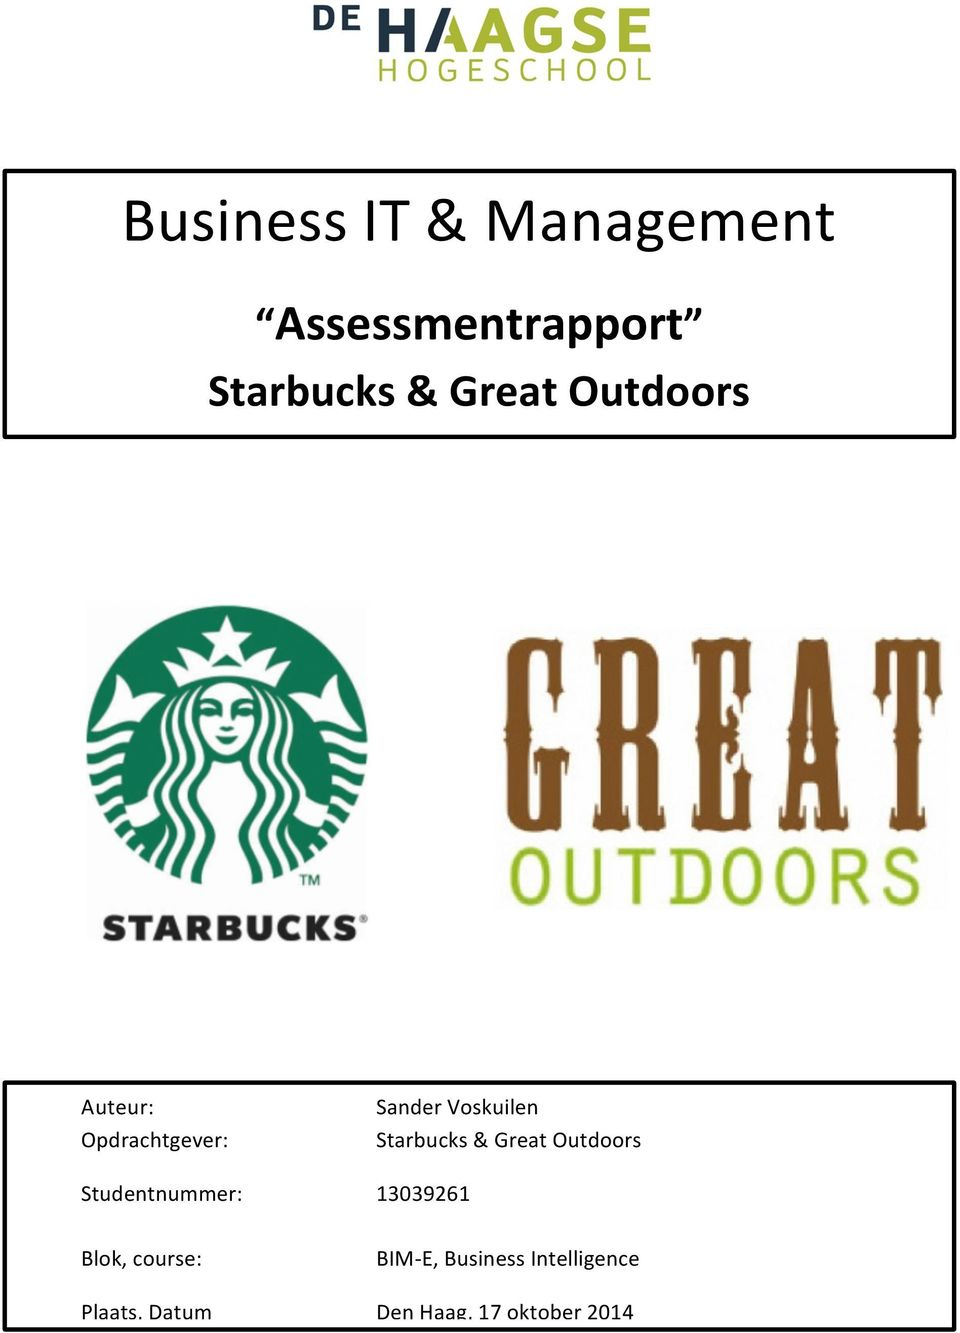 Voskuilen Starbucks & Great Outdoors 13039261 Blok, course: